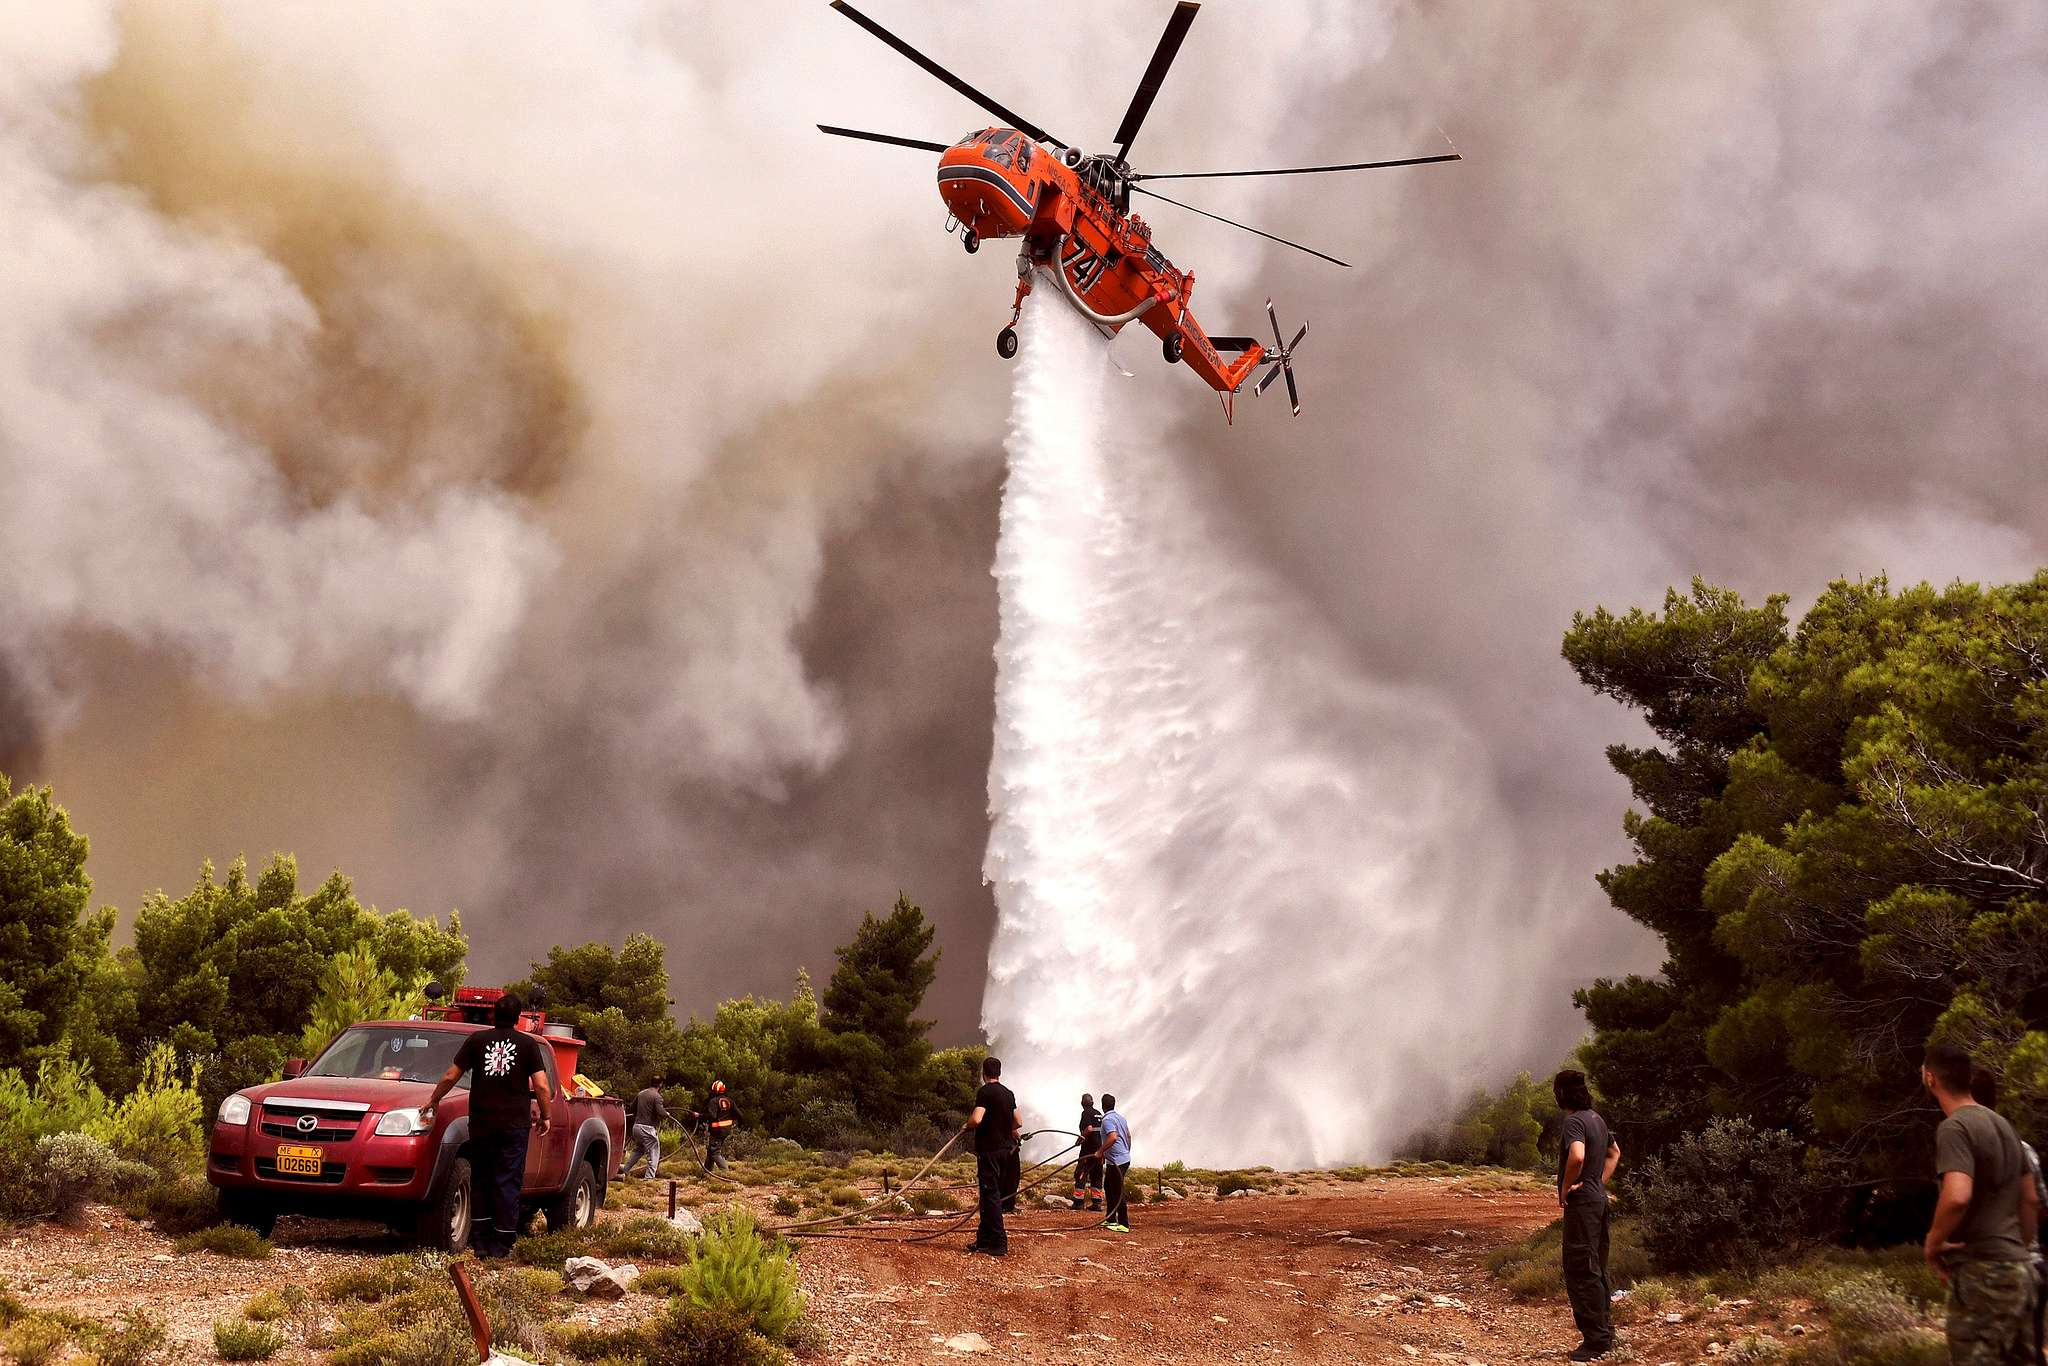 A firefighting helicopter drops water to extinguish flames during a wildfire at the village of Kineta, near Athens. Photo: VALERIE GACHE/AFP/Getty Images